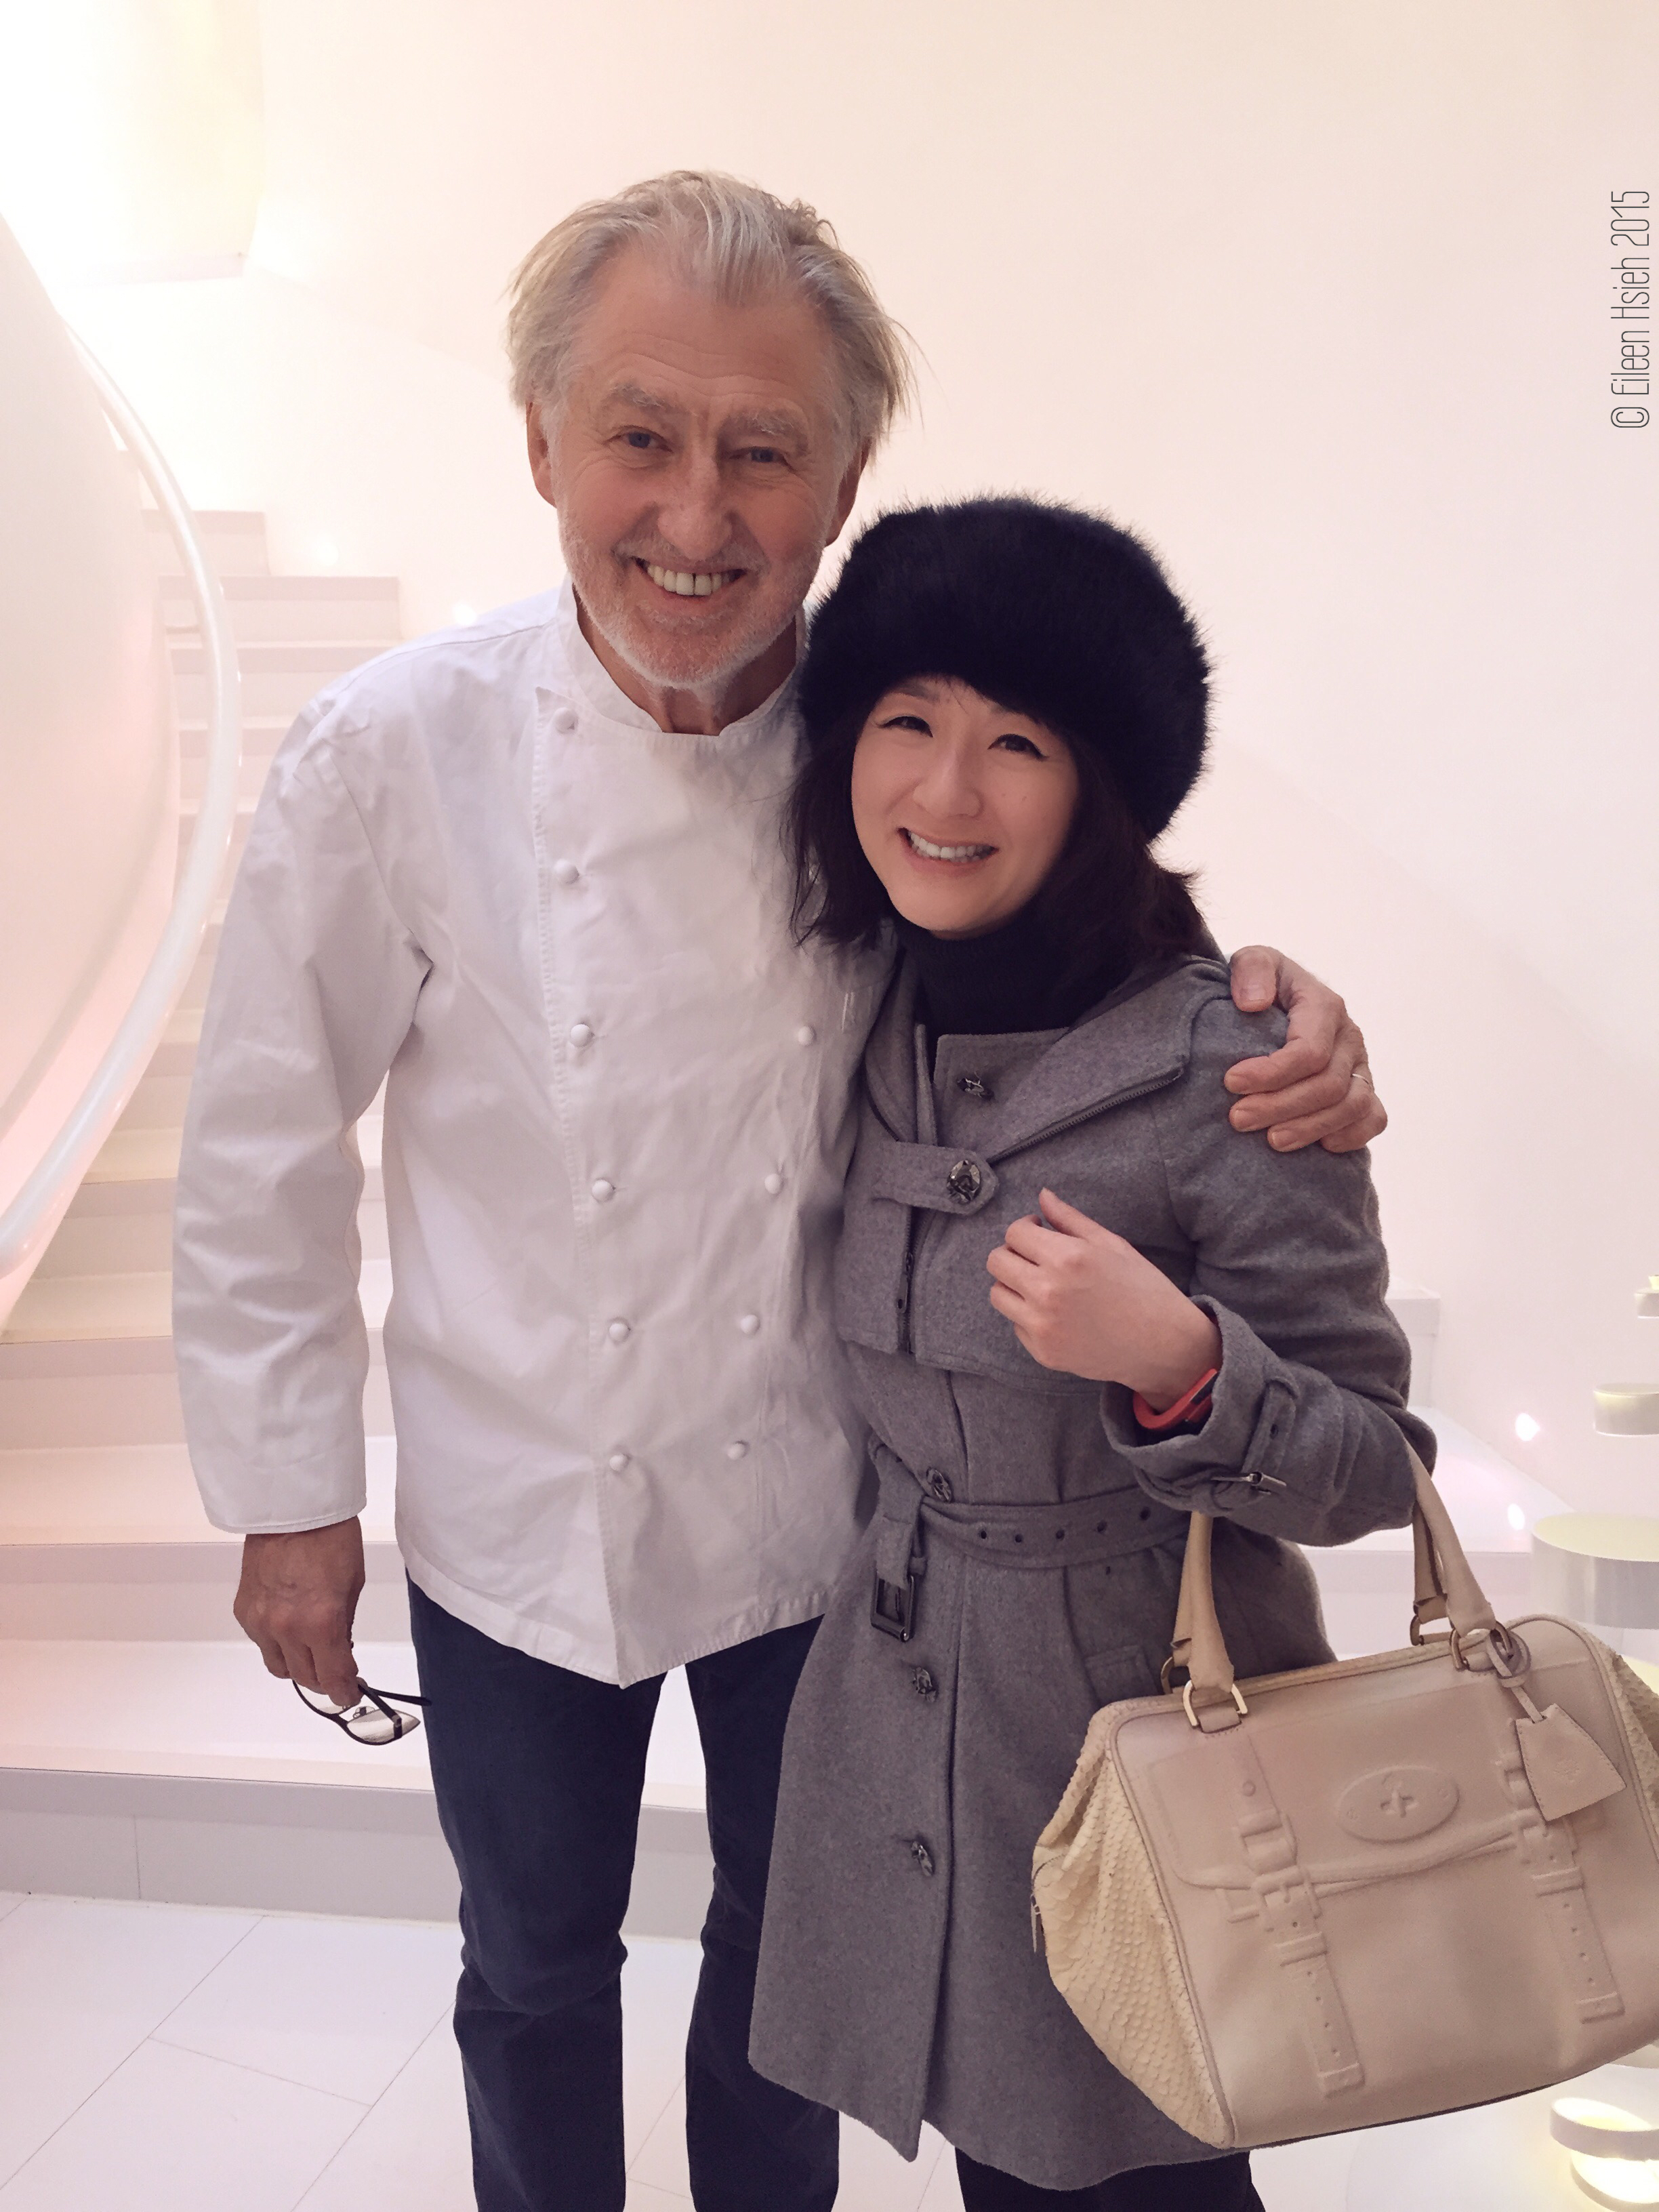 Meeting master chef and creator of Sketch, Pierre Gagnaire. 碰上了來倫敦查勤的 Sketch 米其林名廚 Pierre Gagnaire。   © Eileen Hsieh